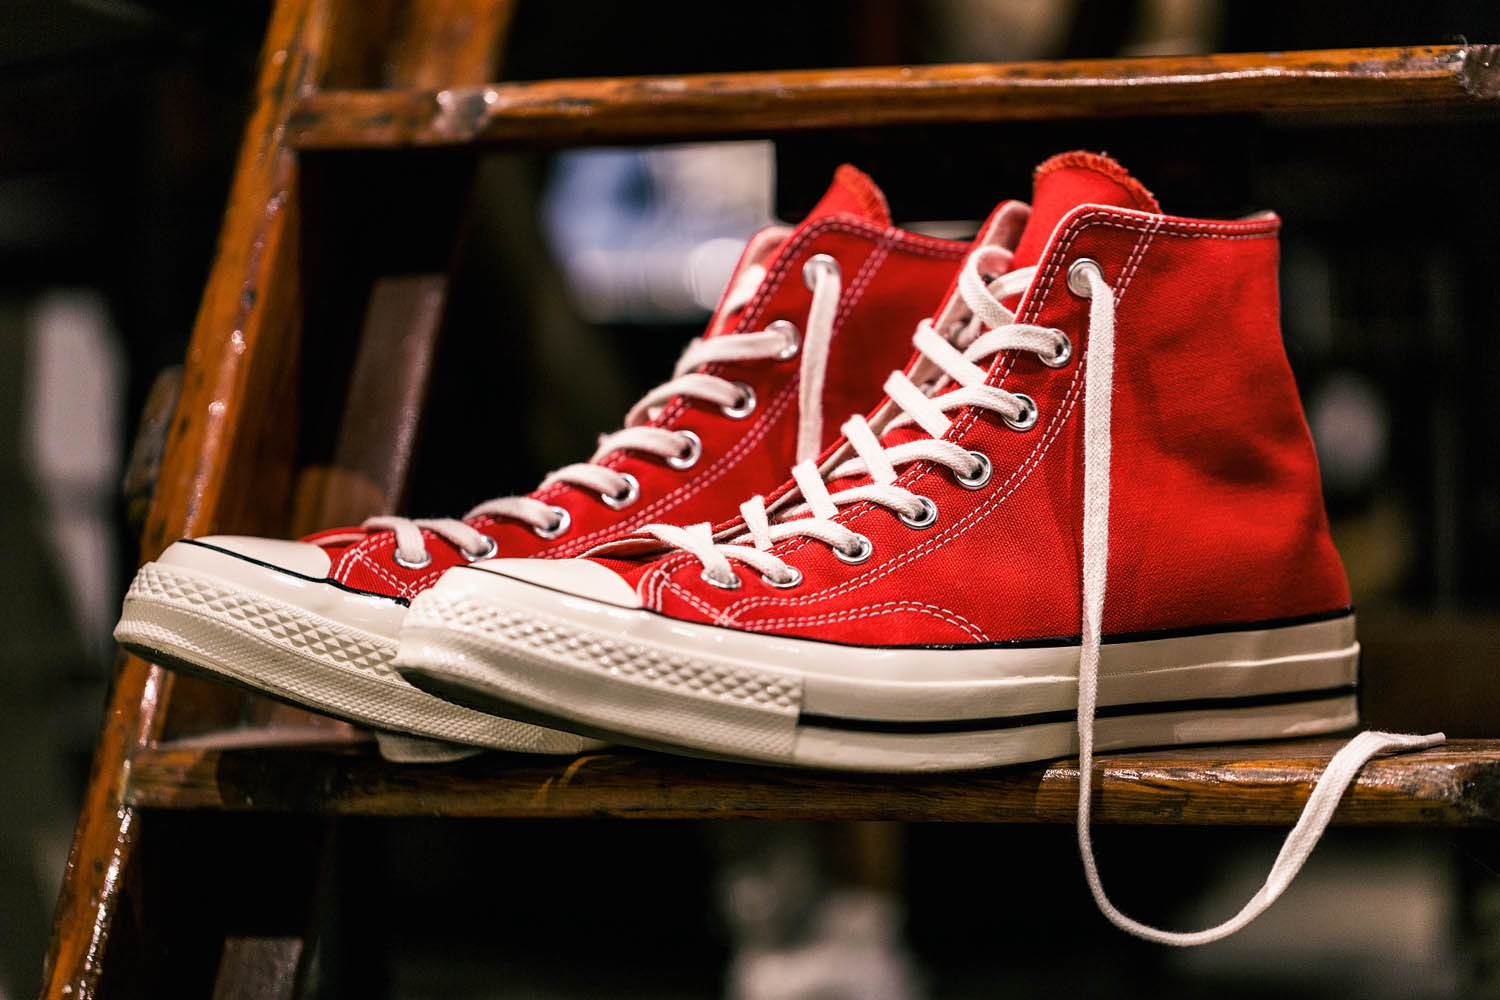 converse-shows-its-colors-with-its-latest-chuck-taylor-all-star-70s-release-3